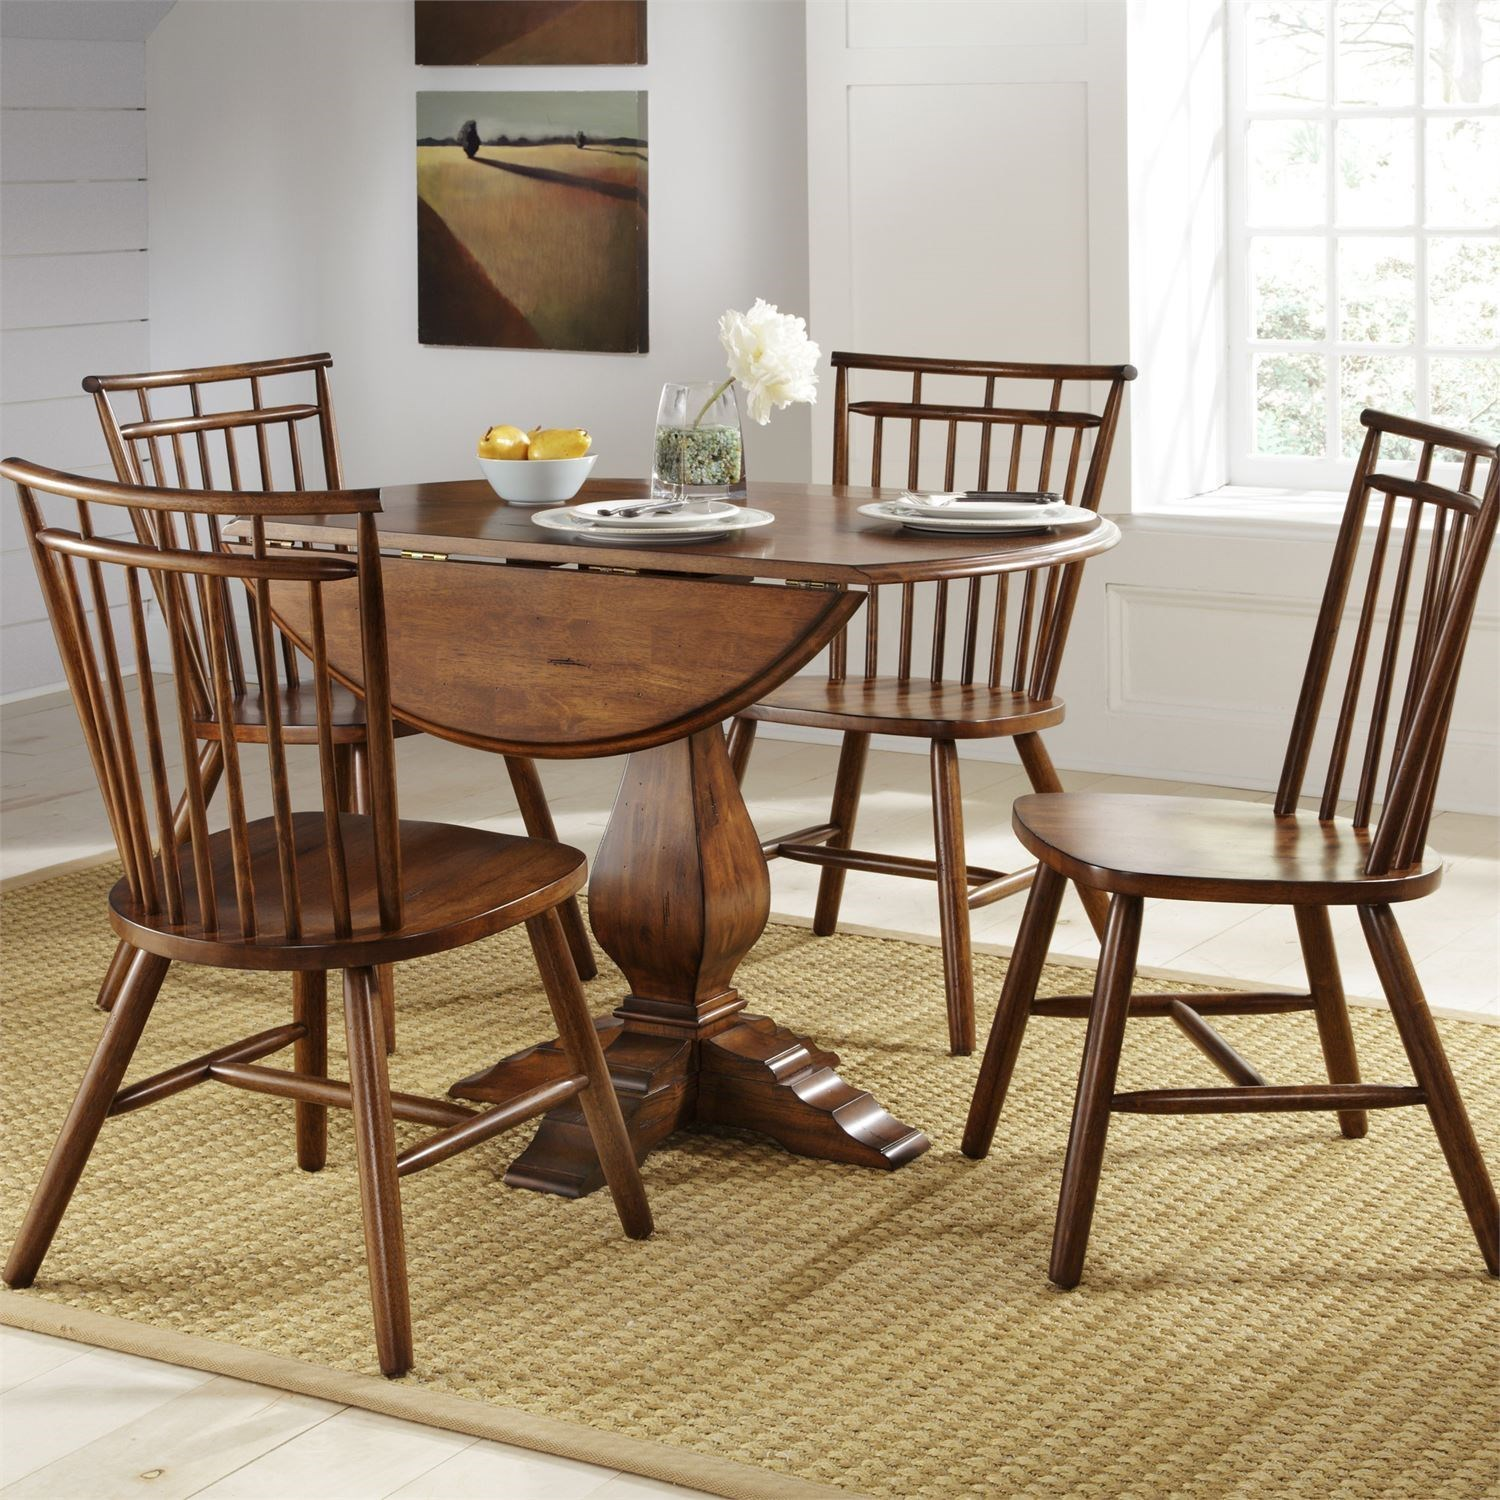 Creations II 5 Piece Dining Table and Chair Set by Libby at Walker's Furniture